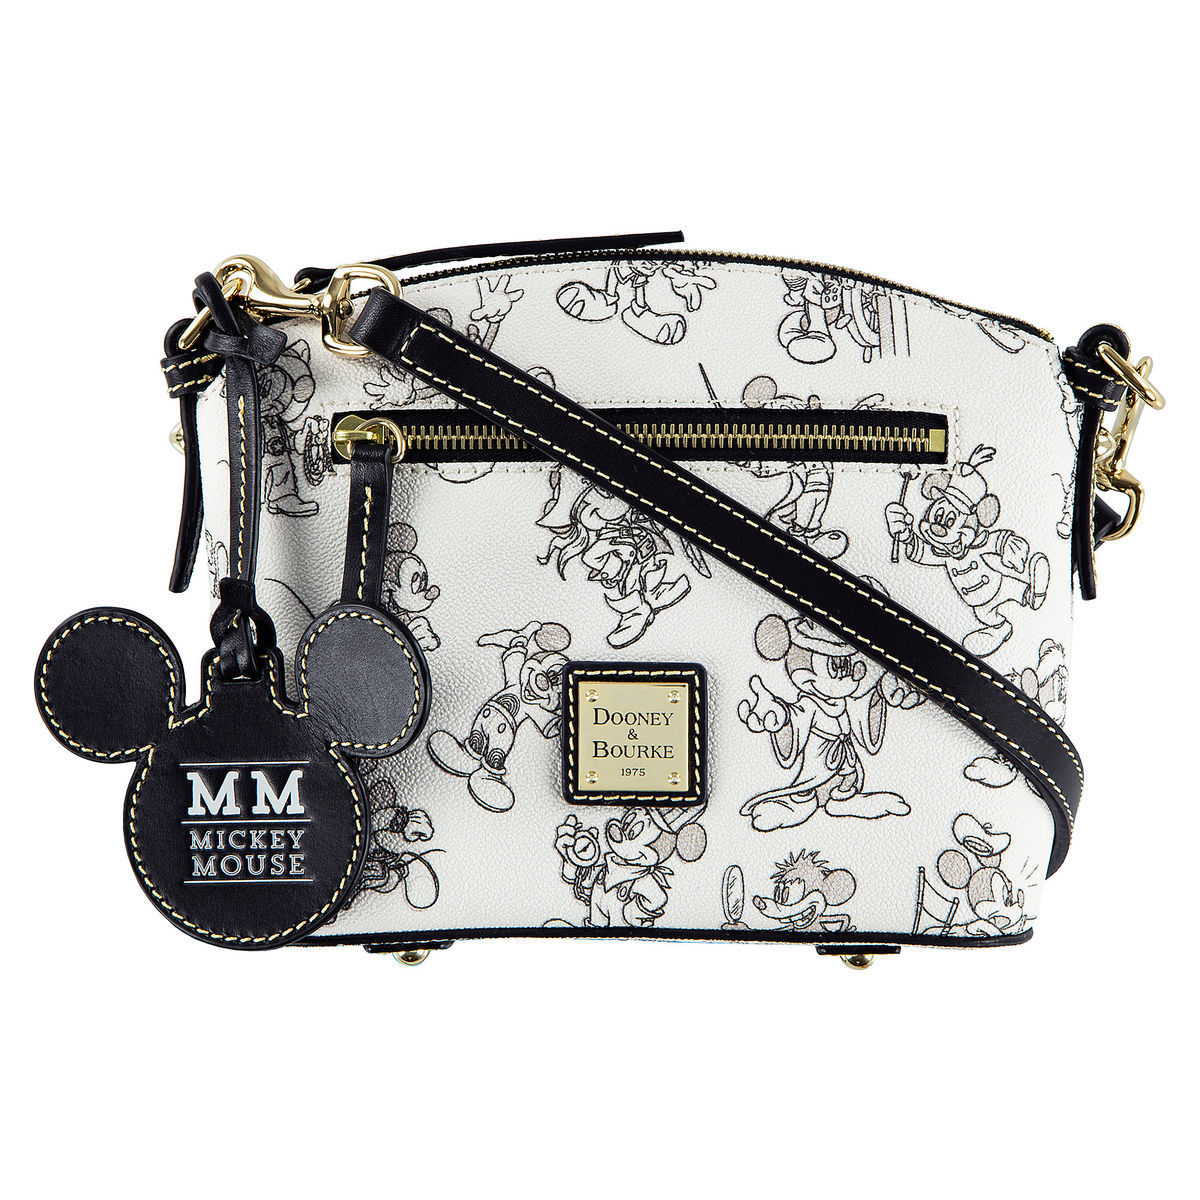 Mickey Mouse Through The Years Crossbody Bag By Dooney Bourke